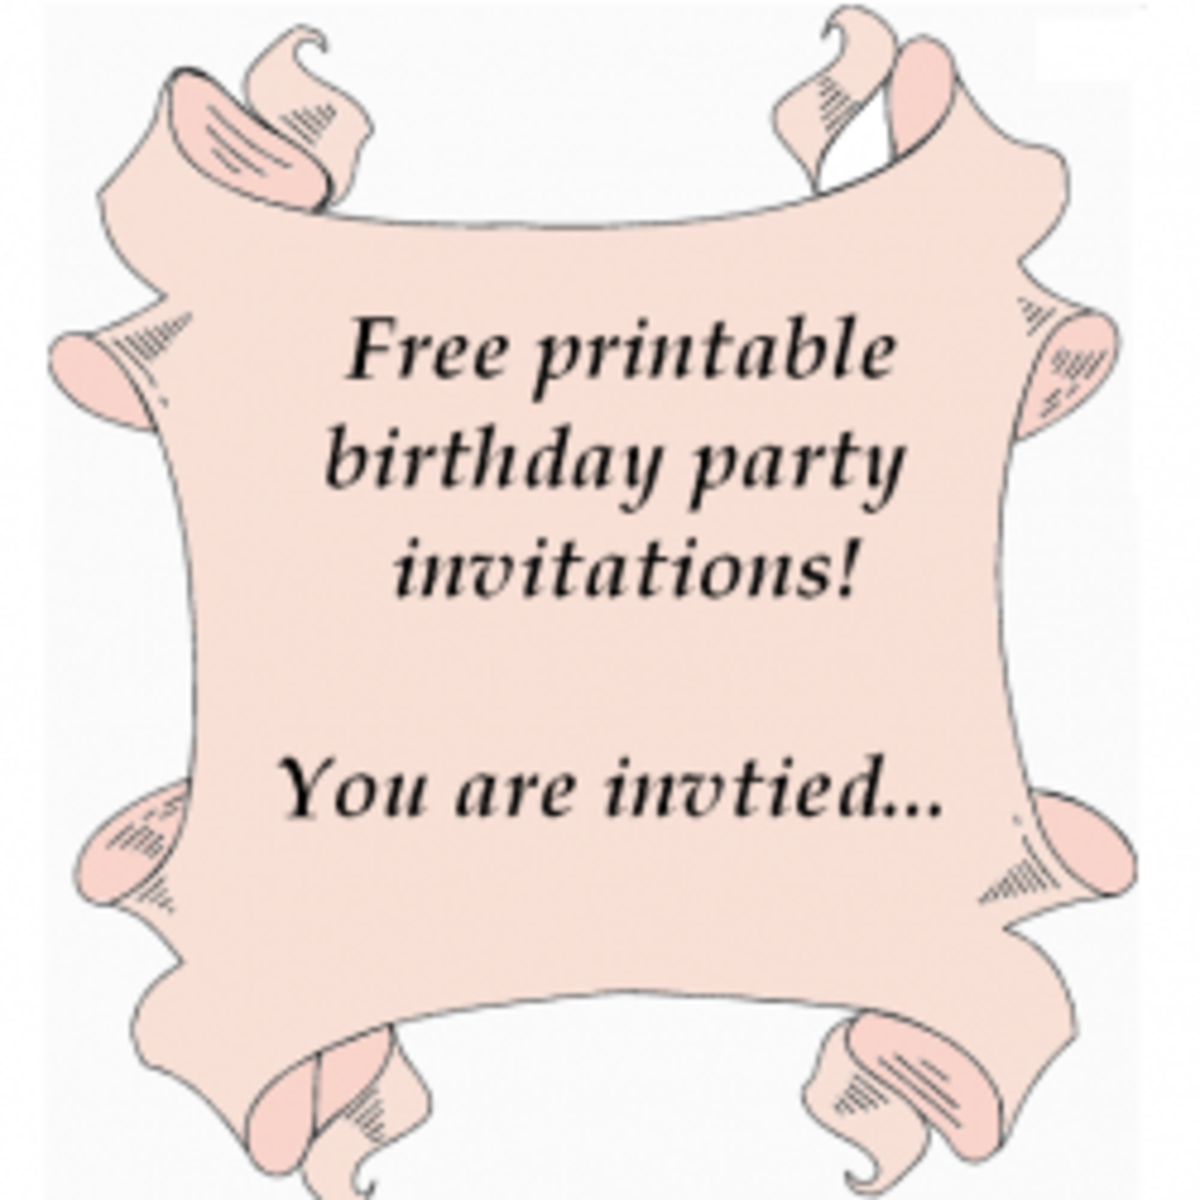 Free Printable Birthday Party Invitations Templates  Free Birthday Party Invitation Template